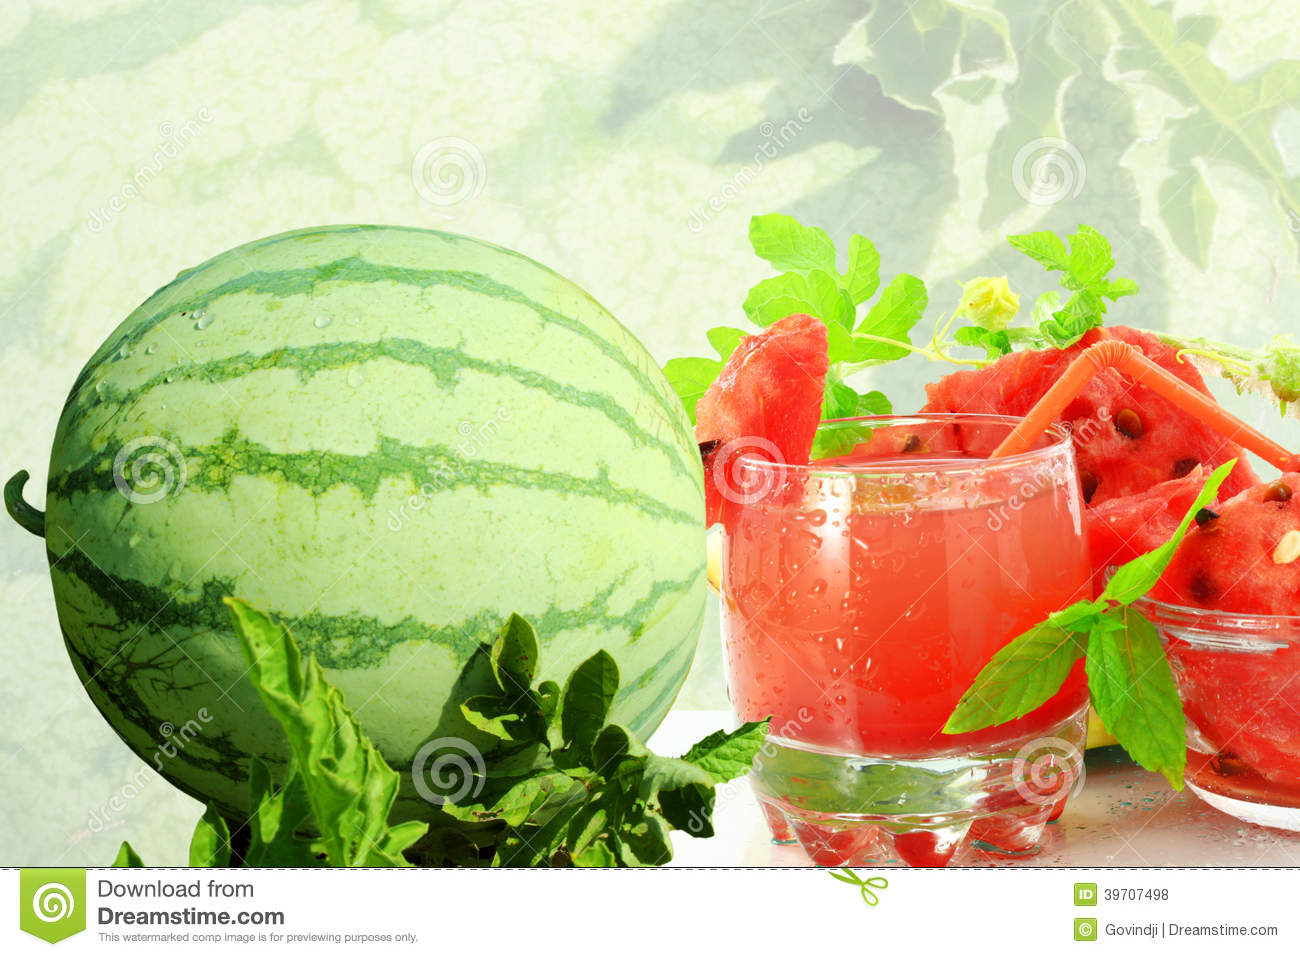 how to make juice of watermelon